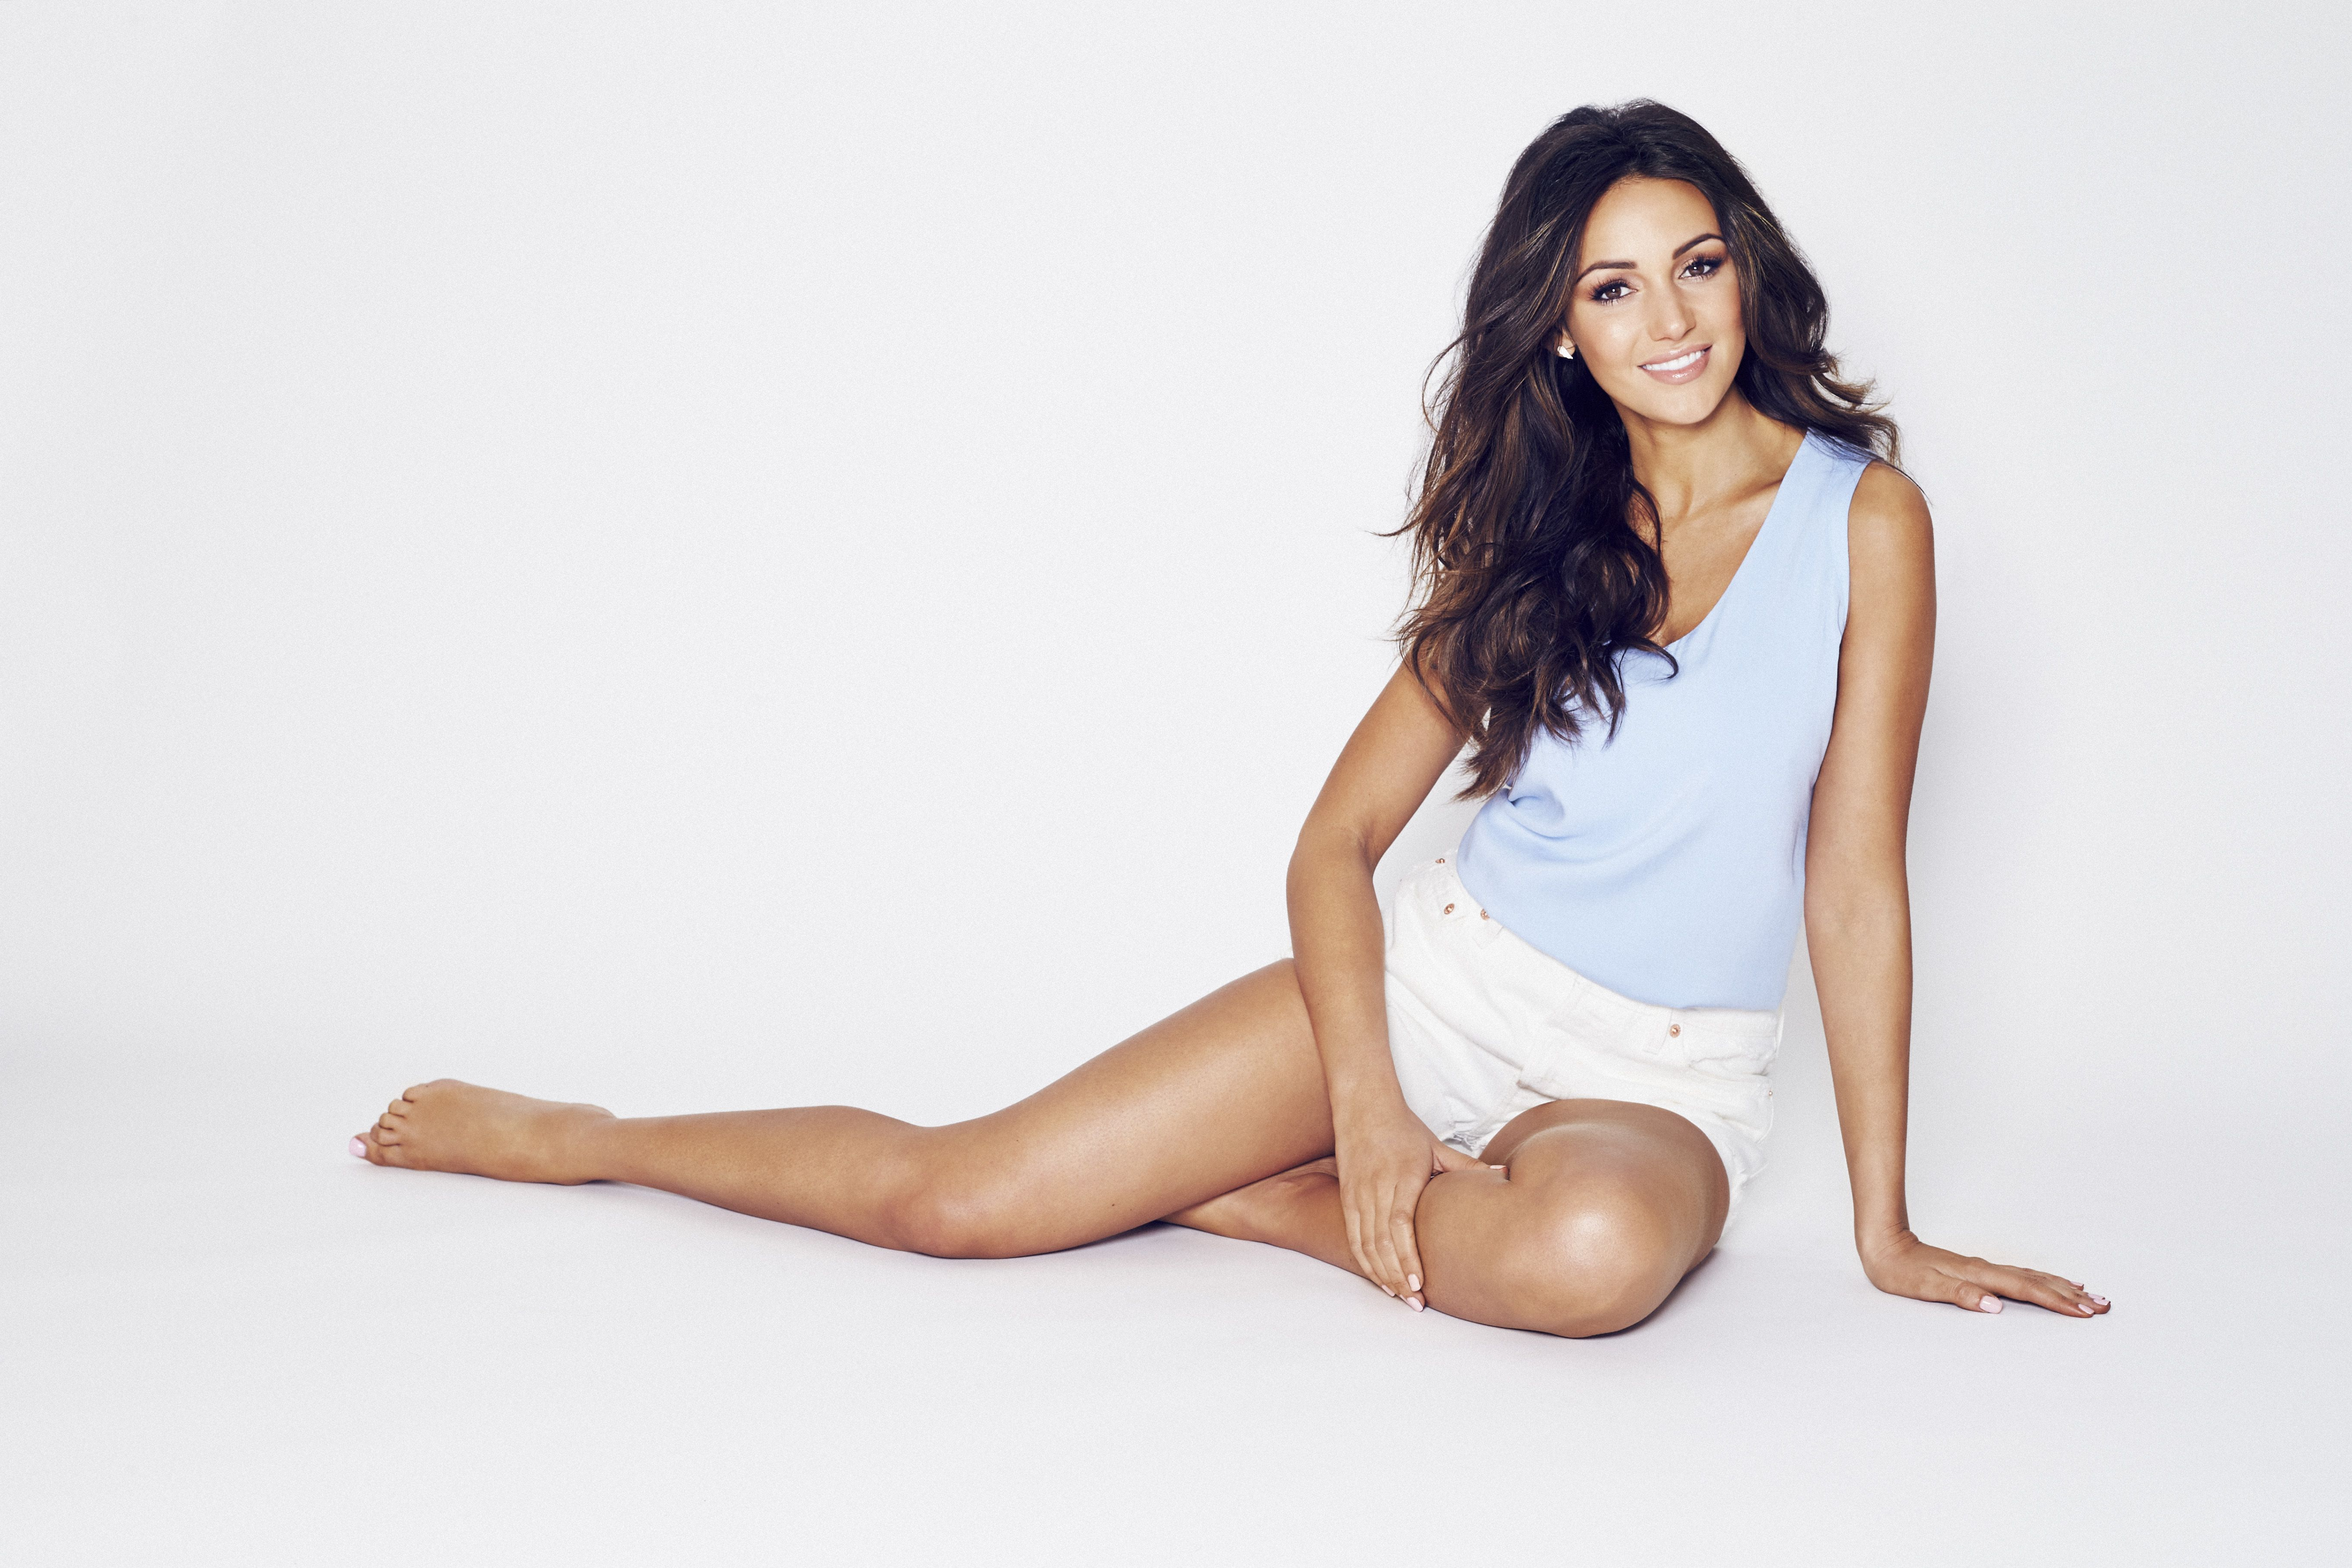 Michelle Keegan interview: her 8 beauty and body tips